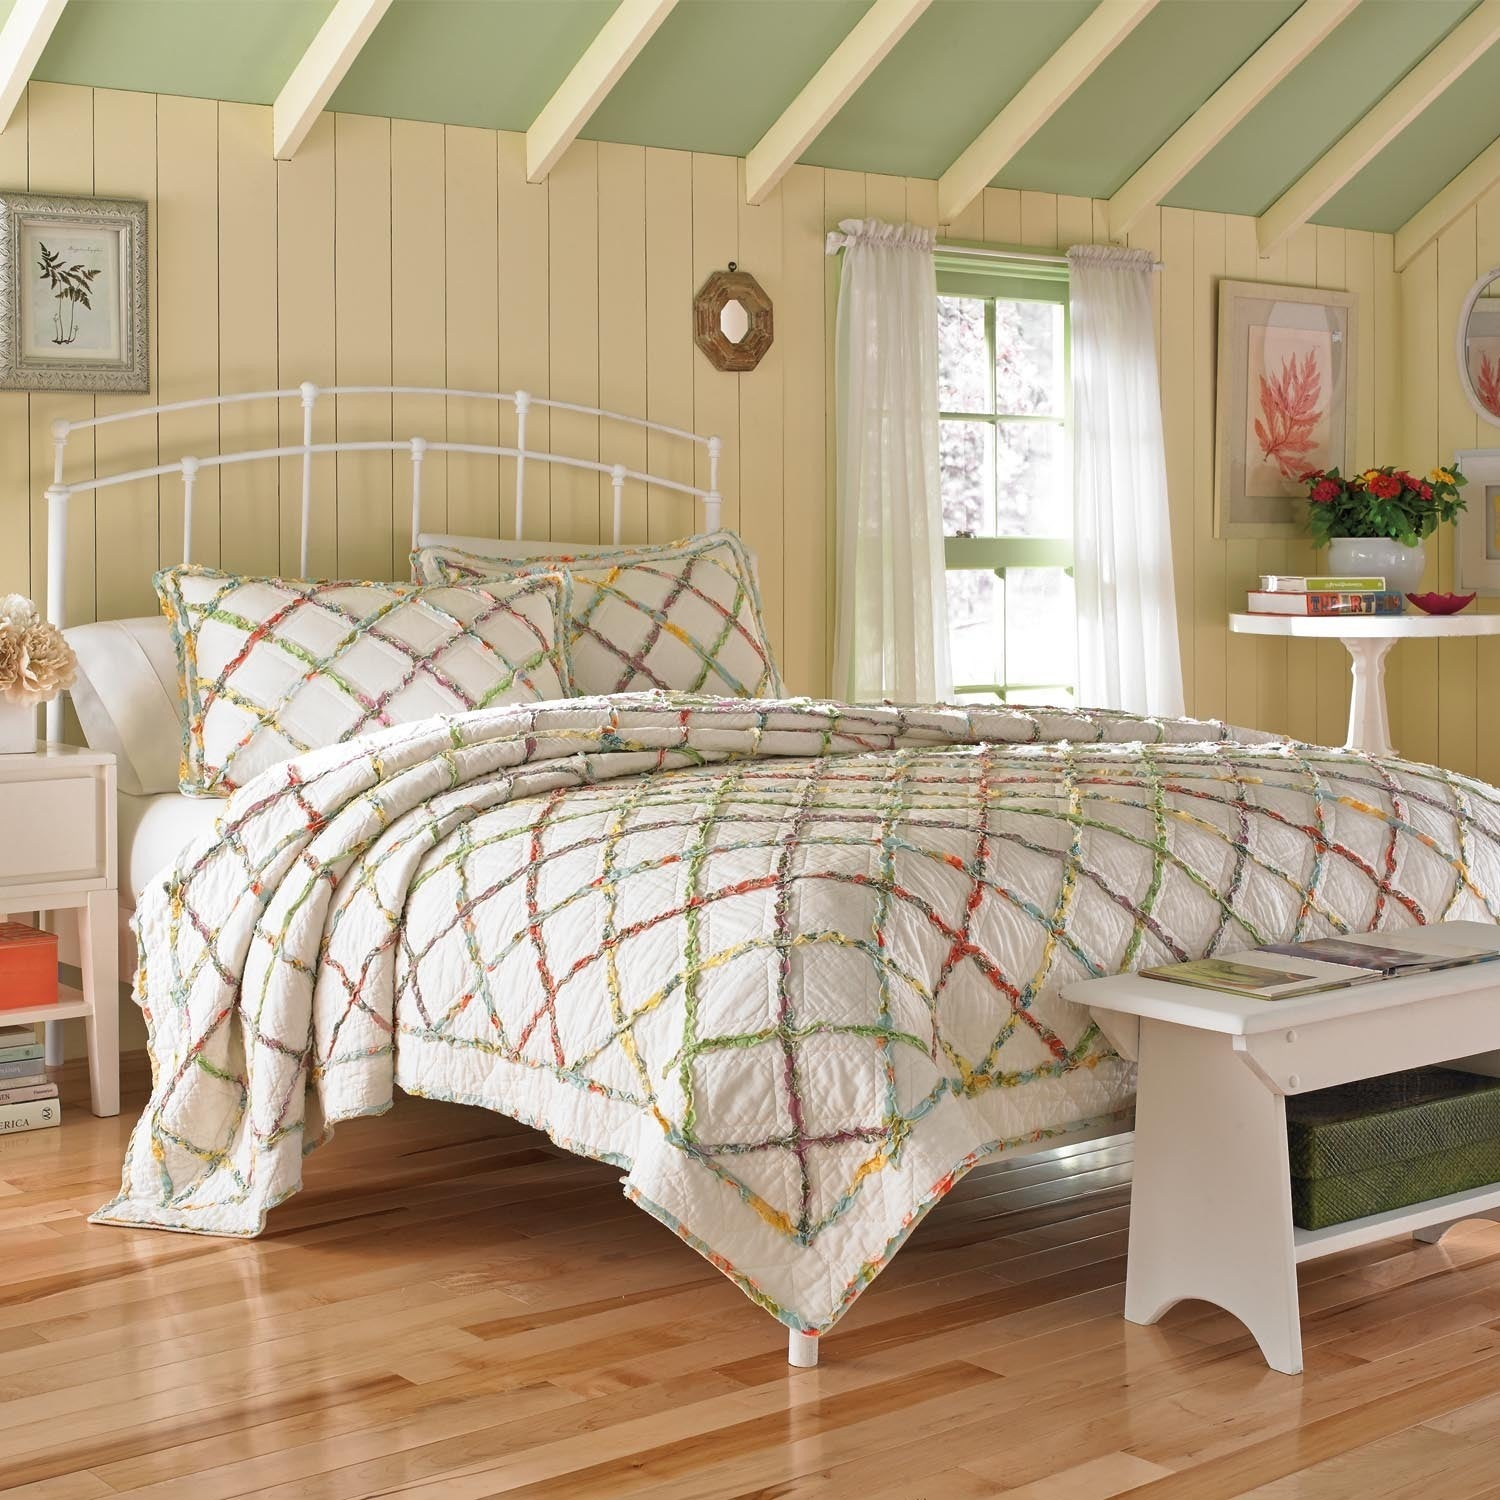 Laura Ashley Ruffled Garden Full/ Queen Size Quilt (As Is...